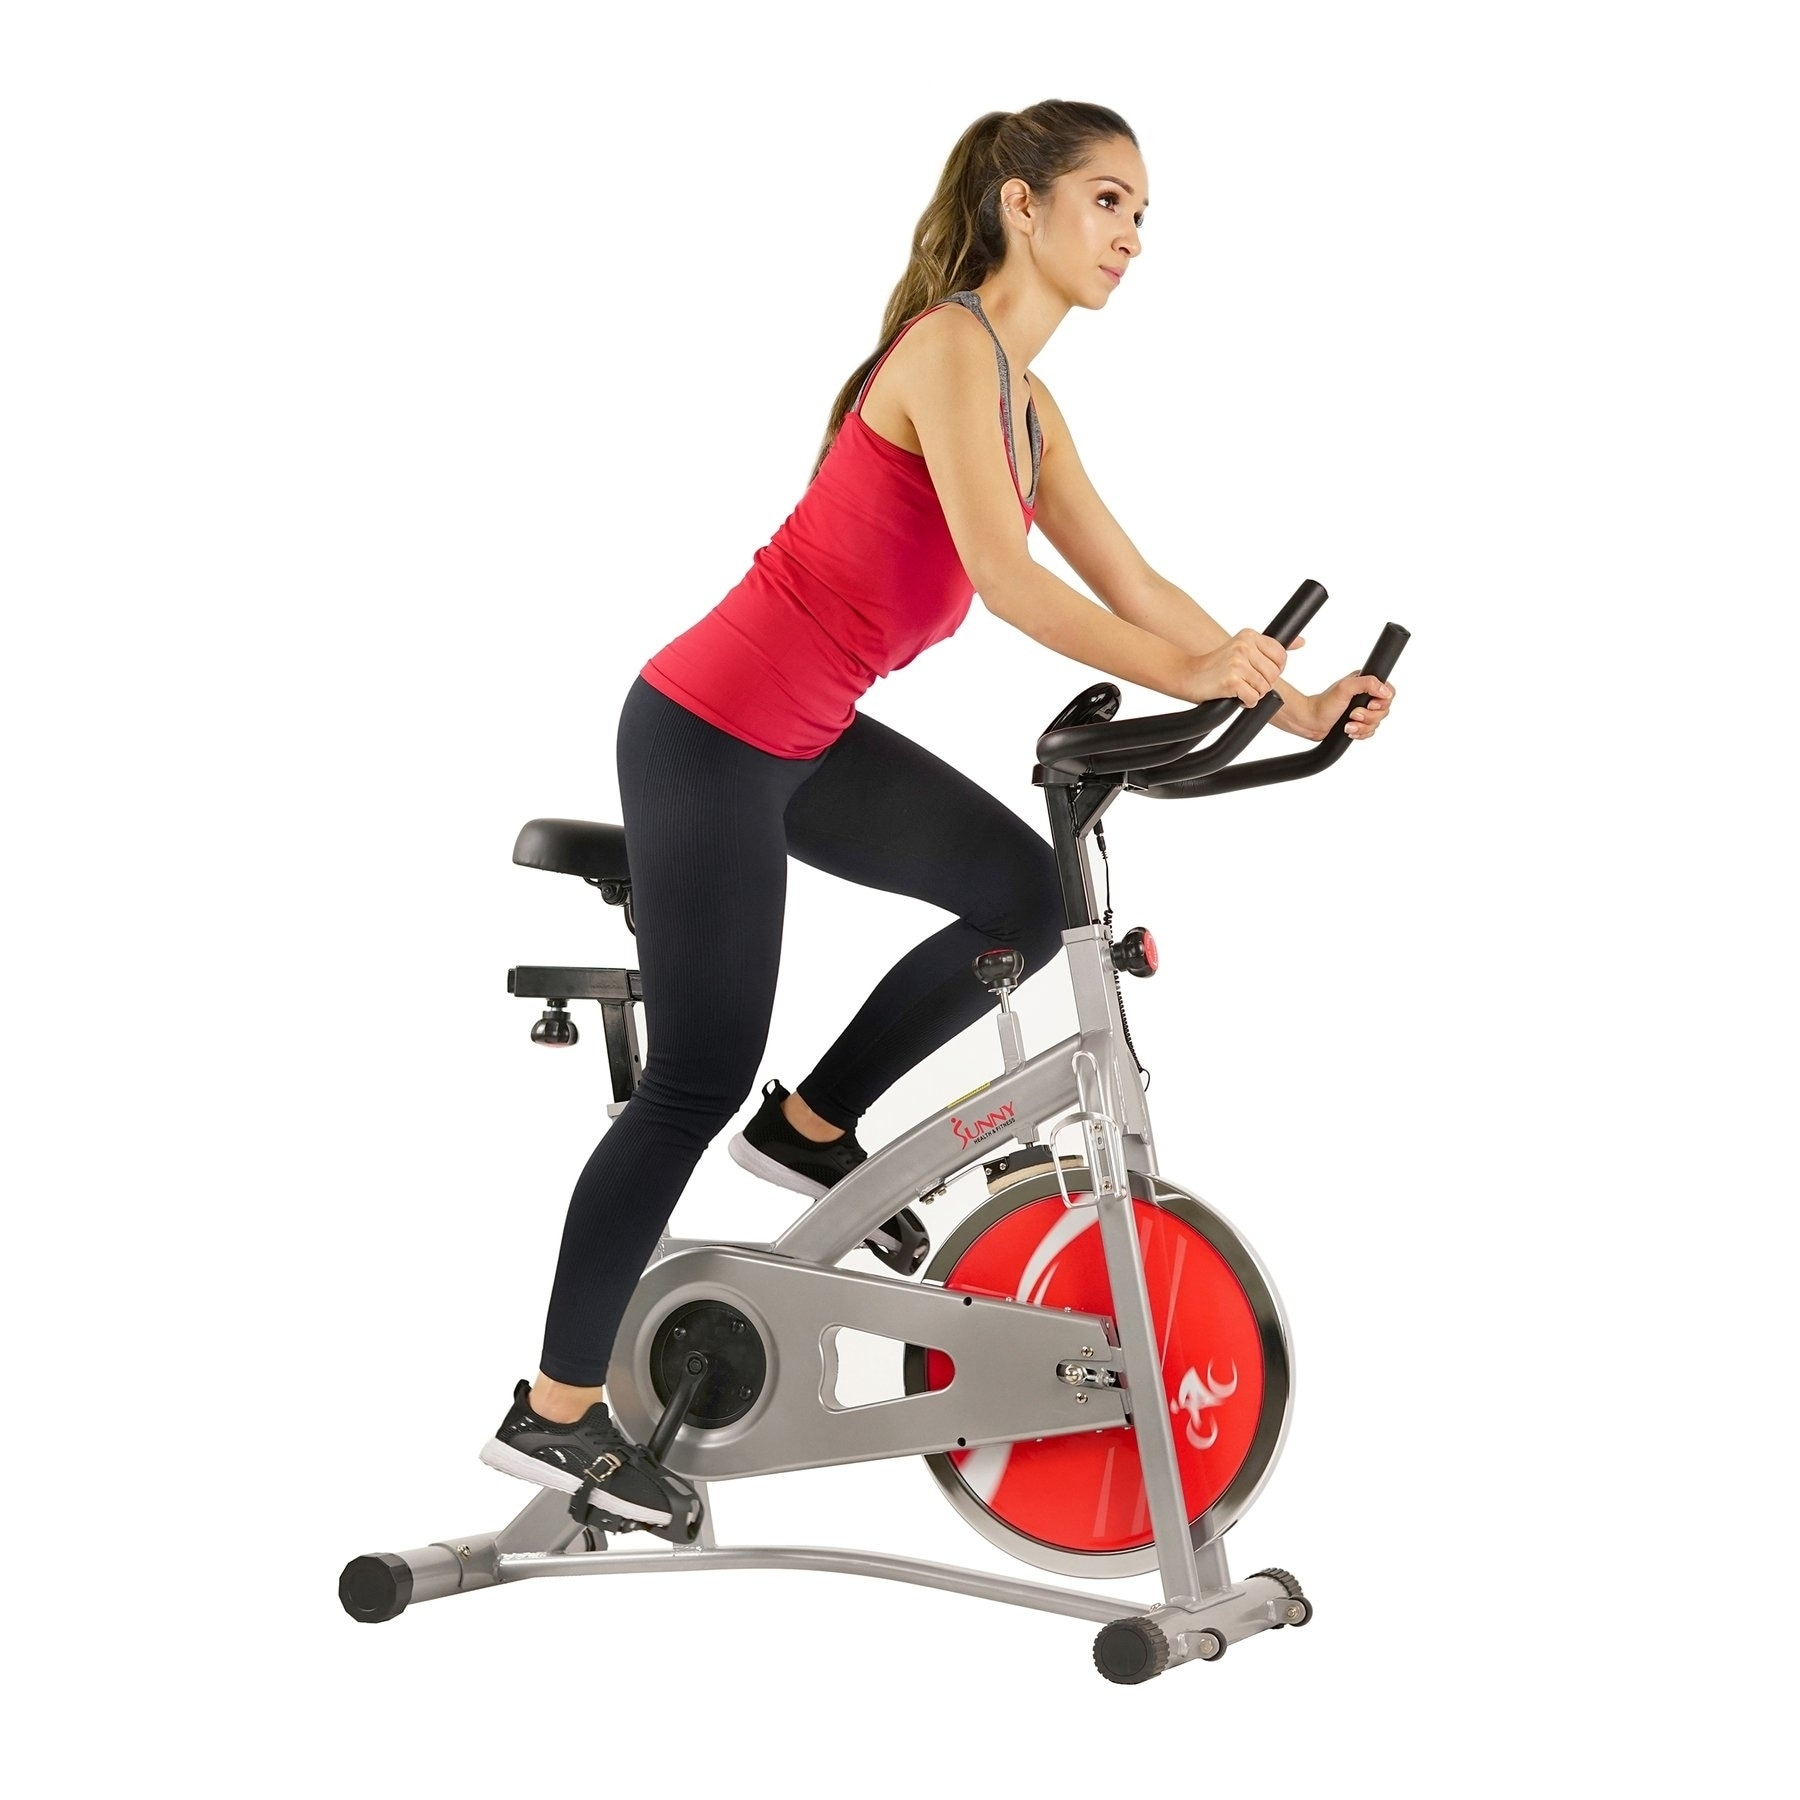 Sunny SF-B1421B Belt Drive Indoor Exercise Cycling Bike (...